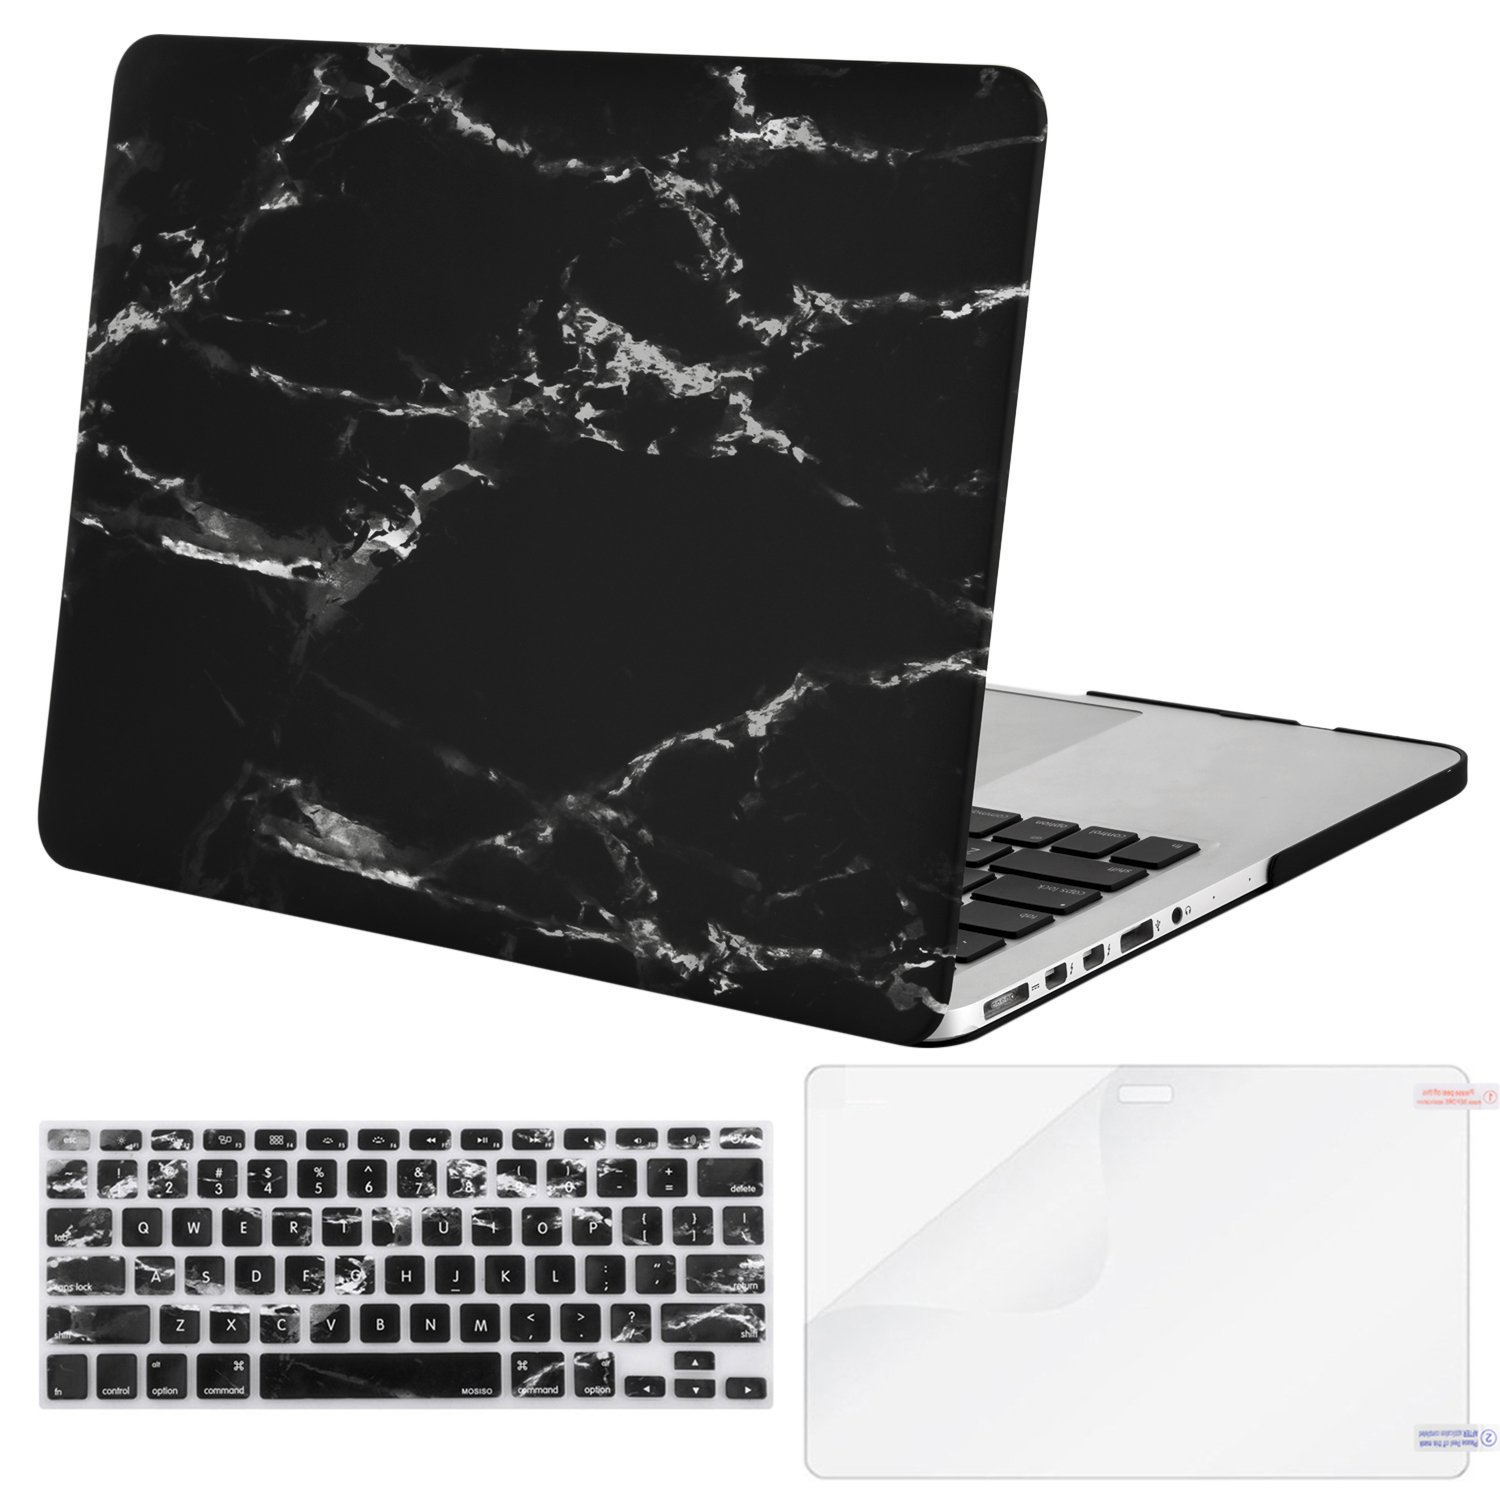 MOSISO Plastic Pattern Hard Case & Keyboard Cover & Screen Protector Only Compatible [Previous Generation] MacBook Pro (No USB-C) Retina 15 Inch (A1398, No CD-ROM), Black Marble